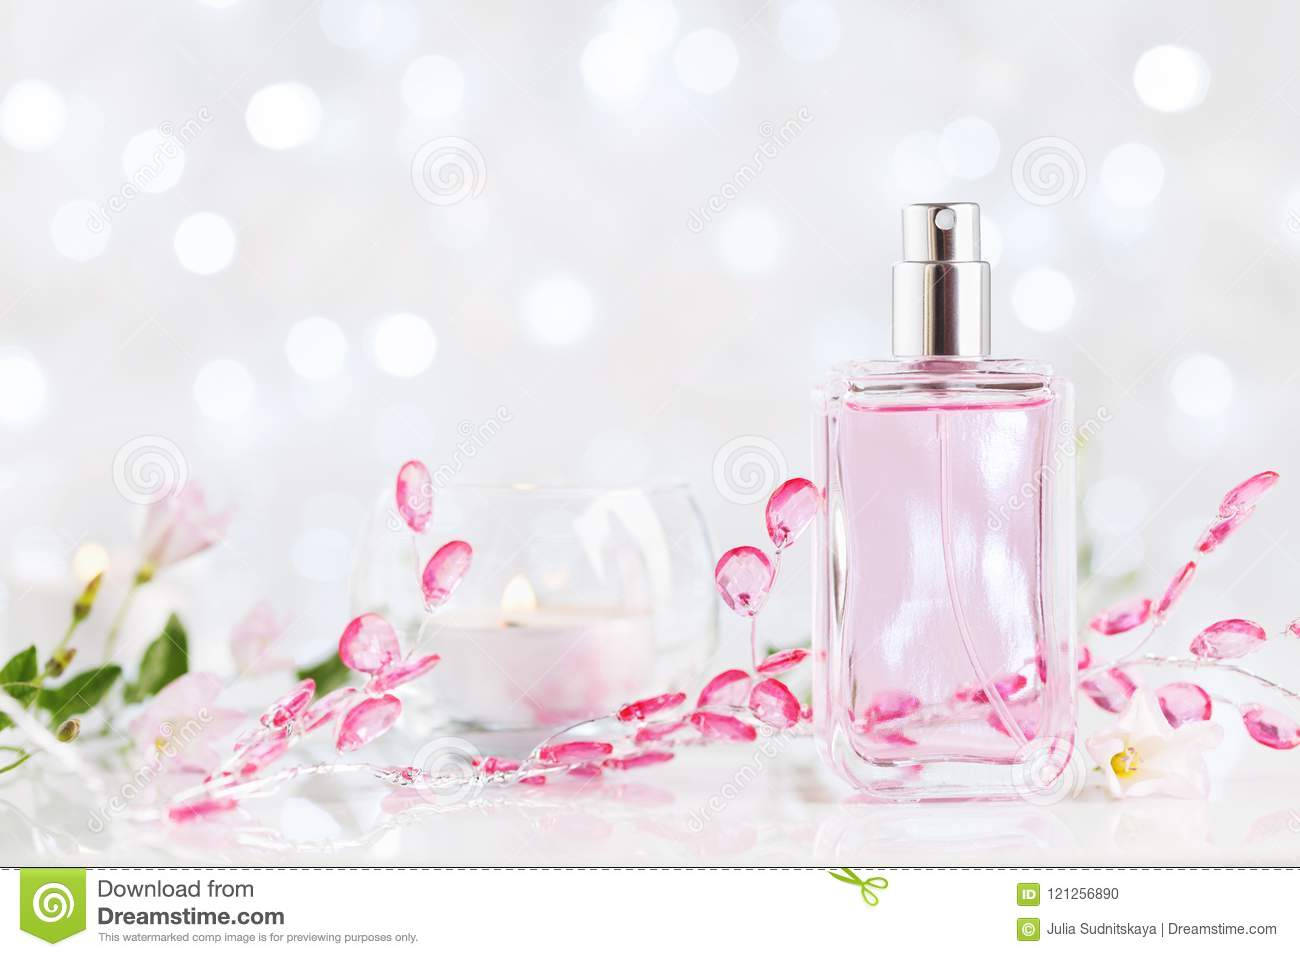 Perfume bottle with fresh flower fragrance. Beauty and perfumery background.